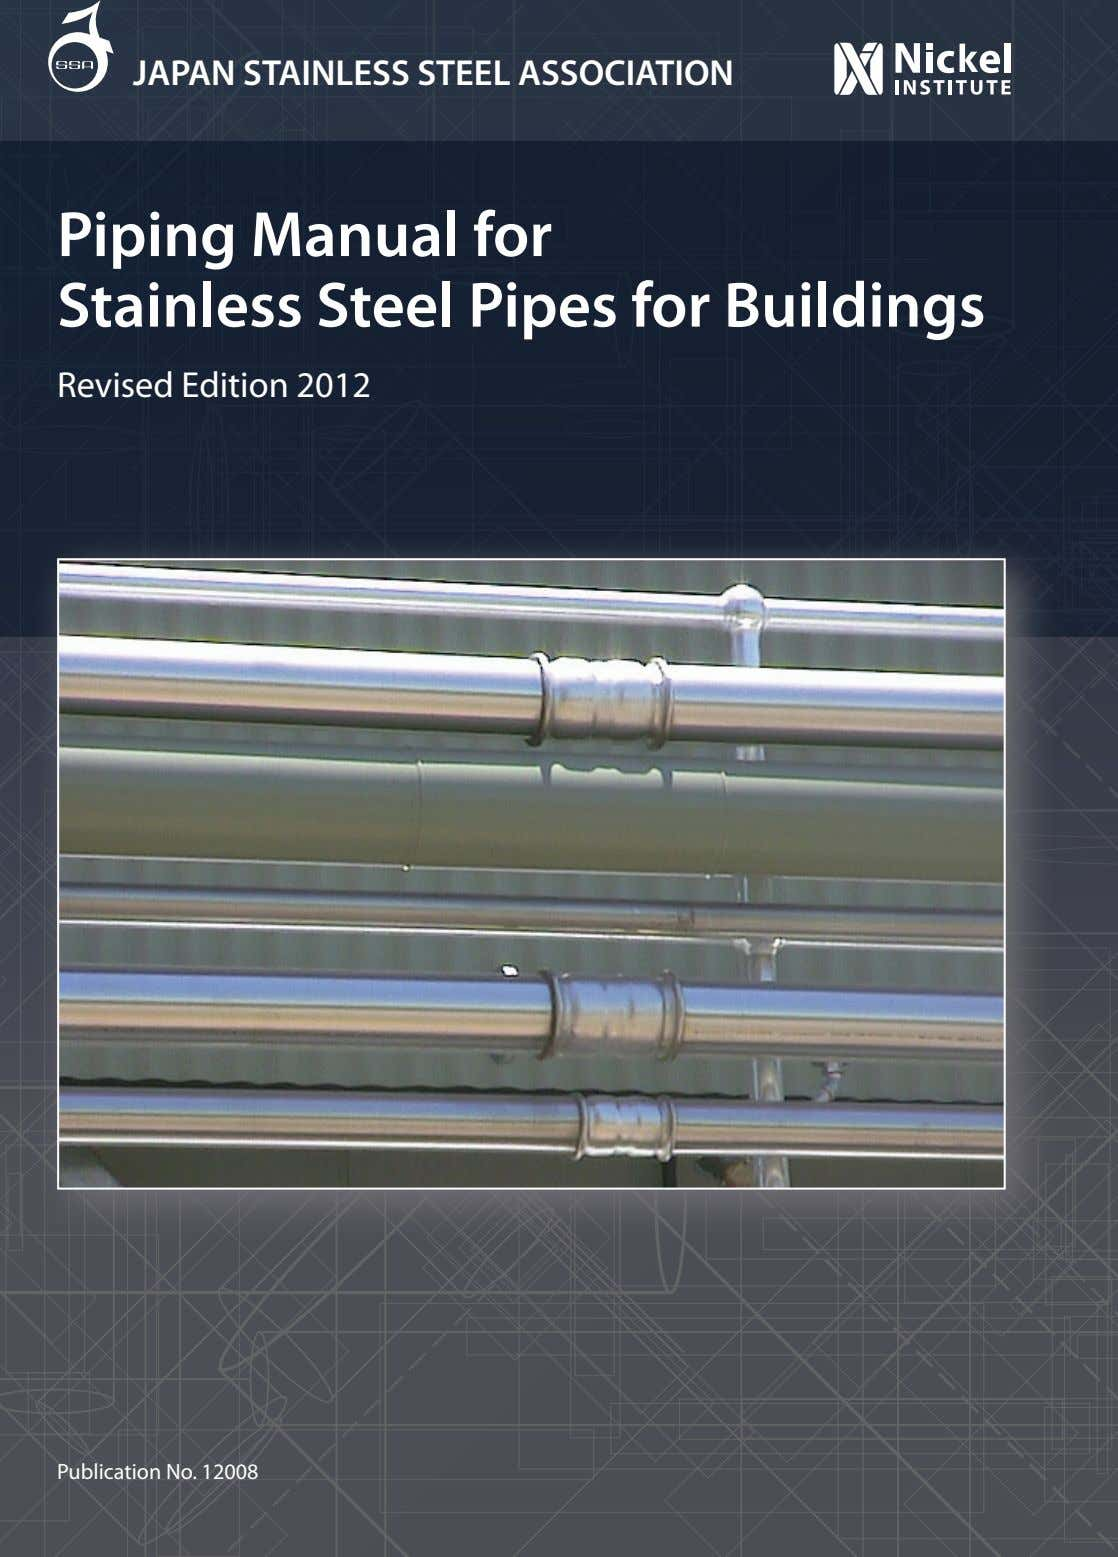 JAPAN STAINLESS STEEL ASSOCIATION Piping Manual for Stainless Steel Pipes for Buildings Revised Edition 2012